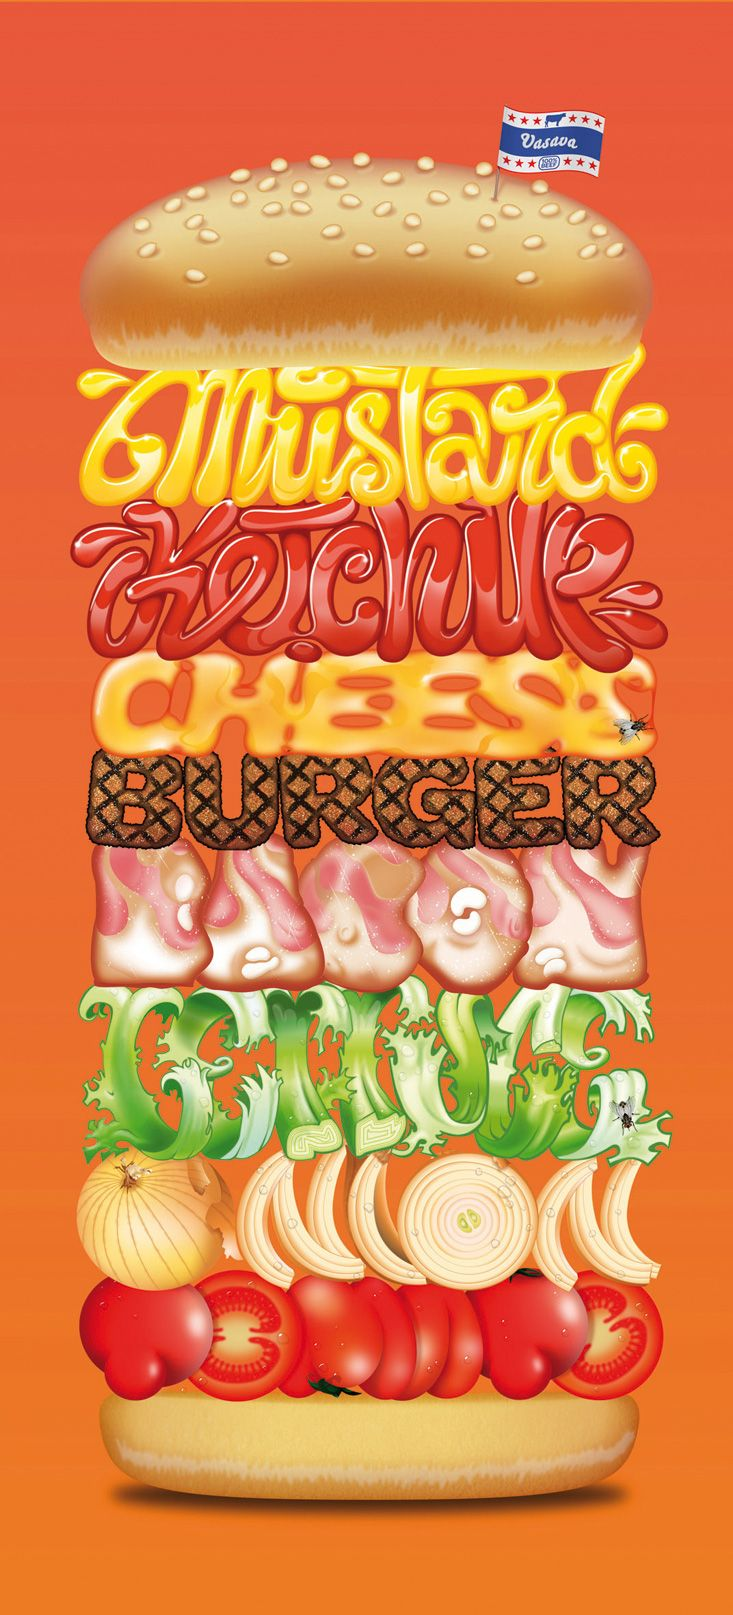 yummy typographic from German designer Vasava (from vasava.es): Design Inspiration, Graphic Design, Ideas, Illustration, Graphicdesign, Food Poster, Food Burgers